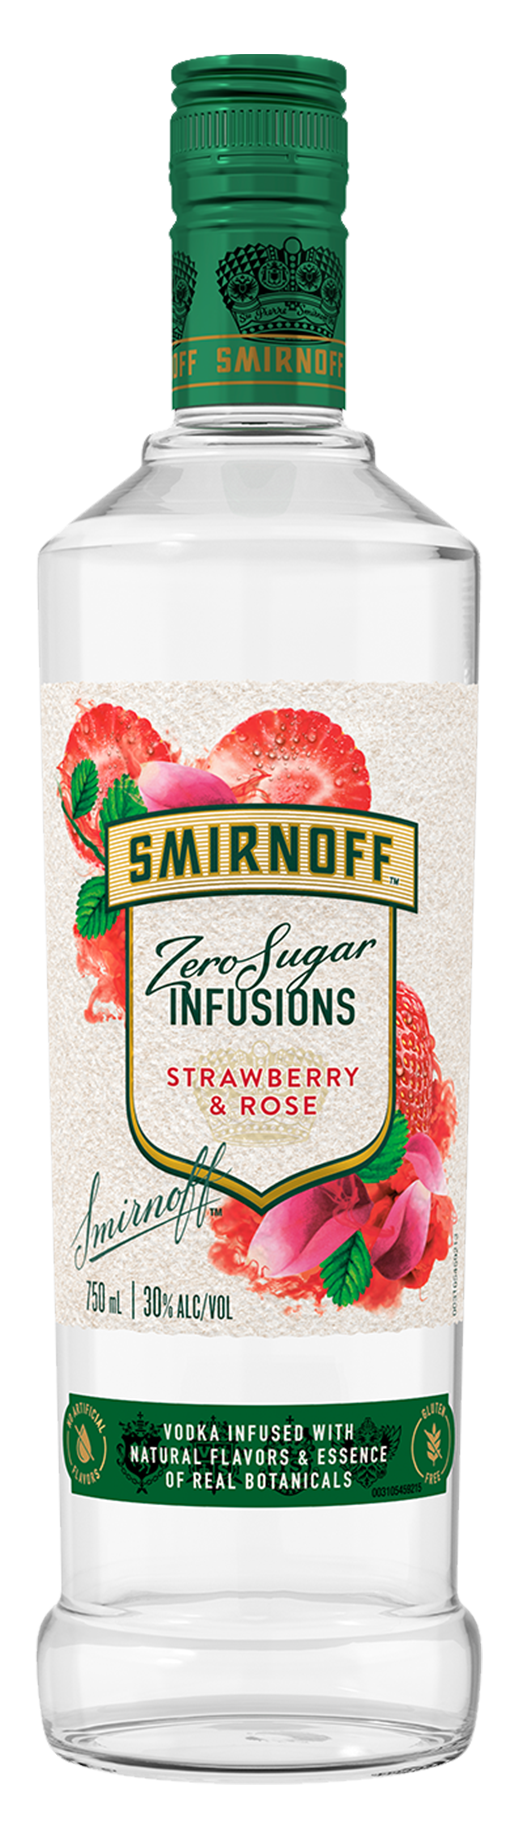 SMIRNOFF ZERO SUGAR INFUSIONS STRAWBERRY & ROSE